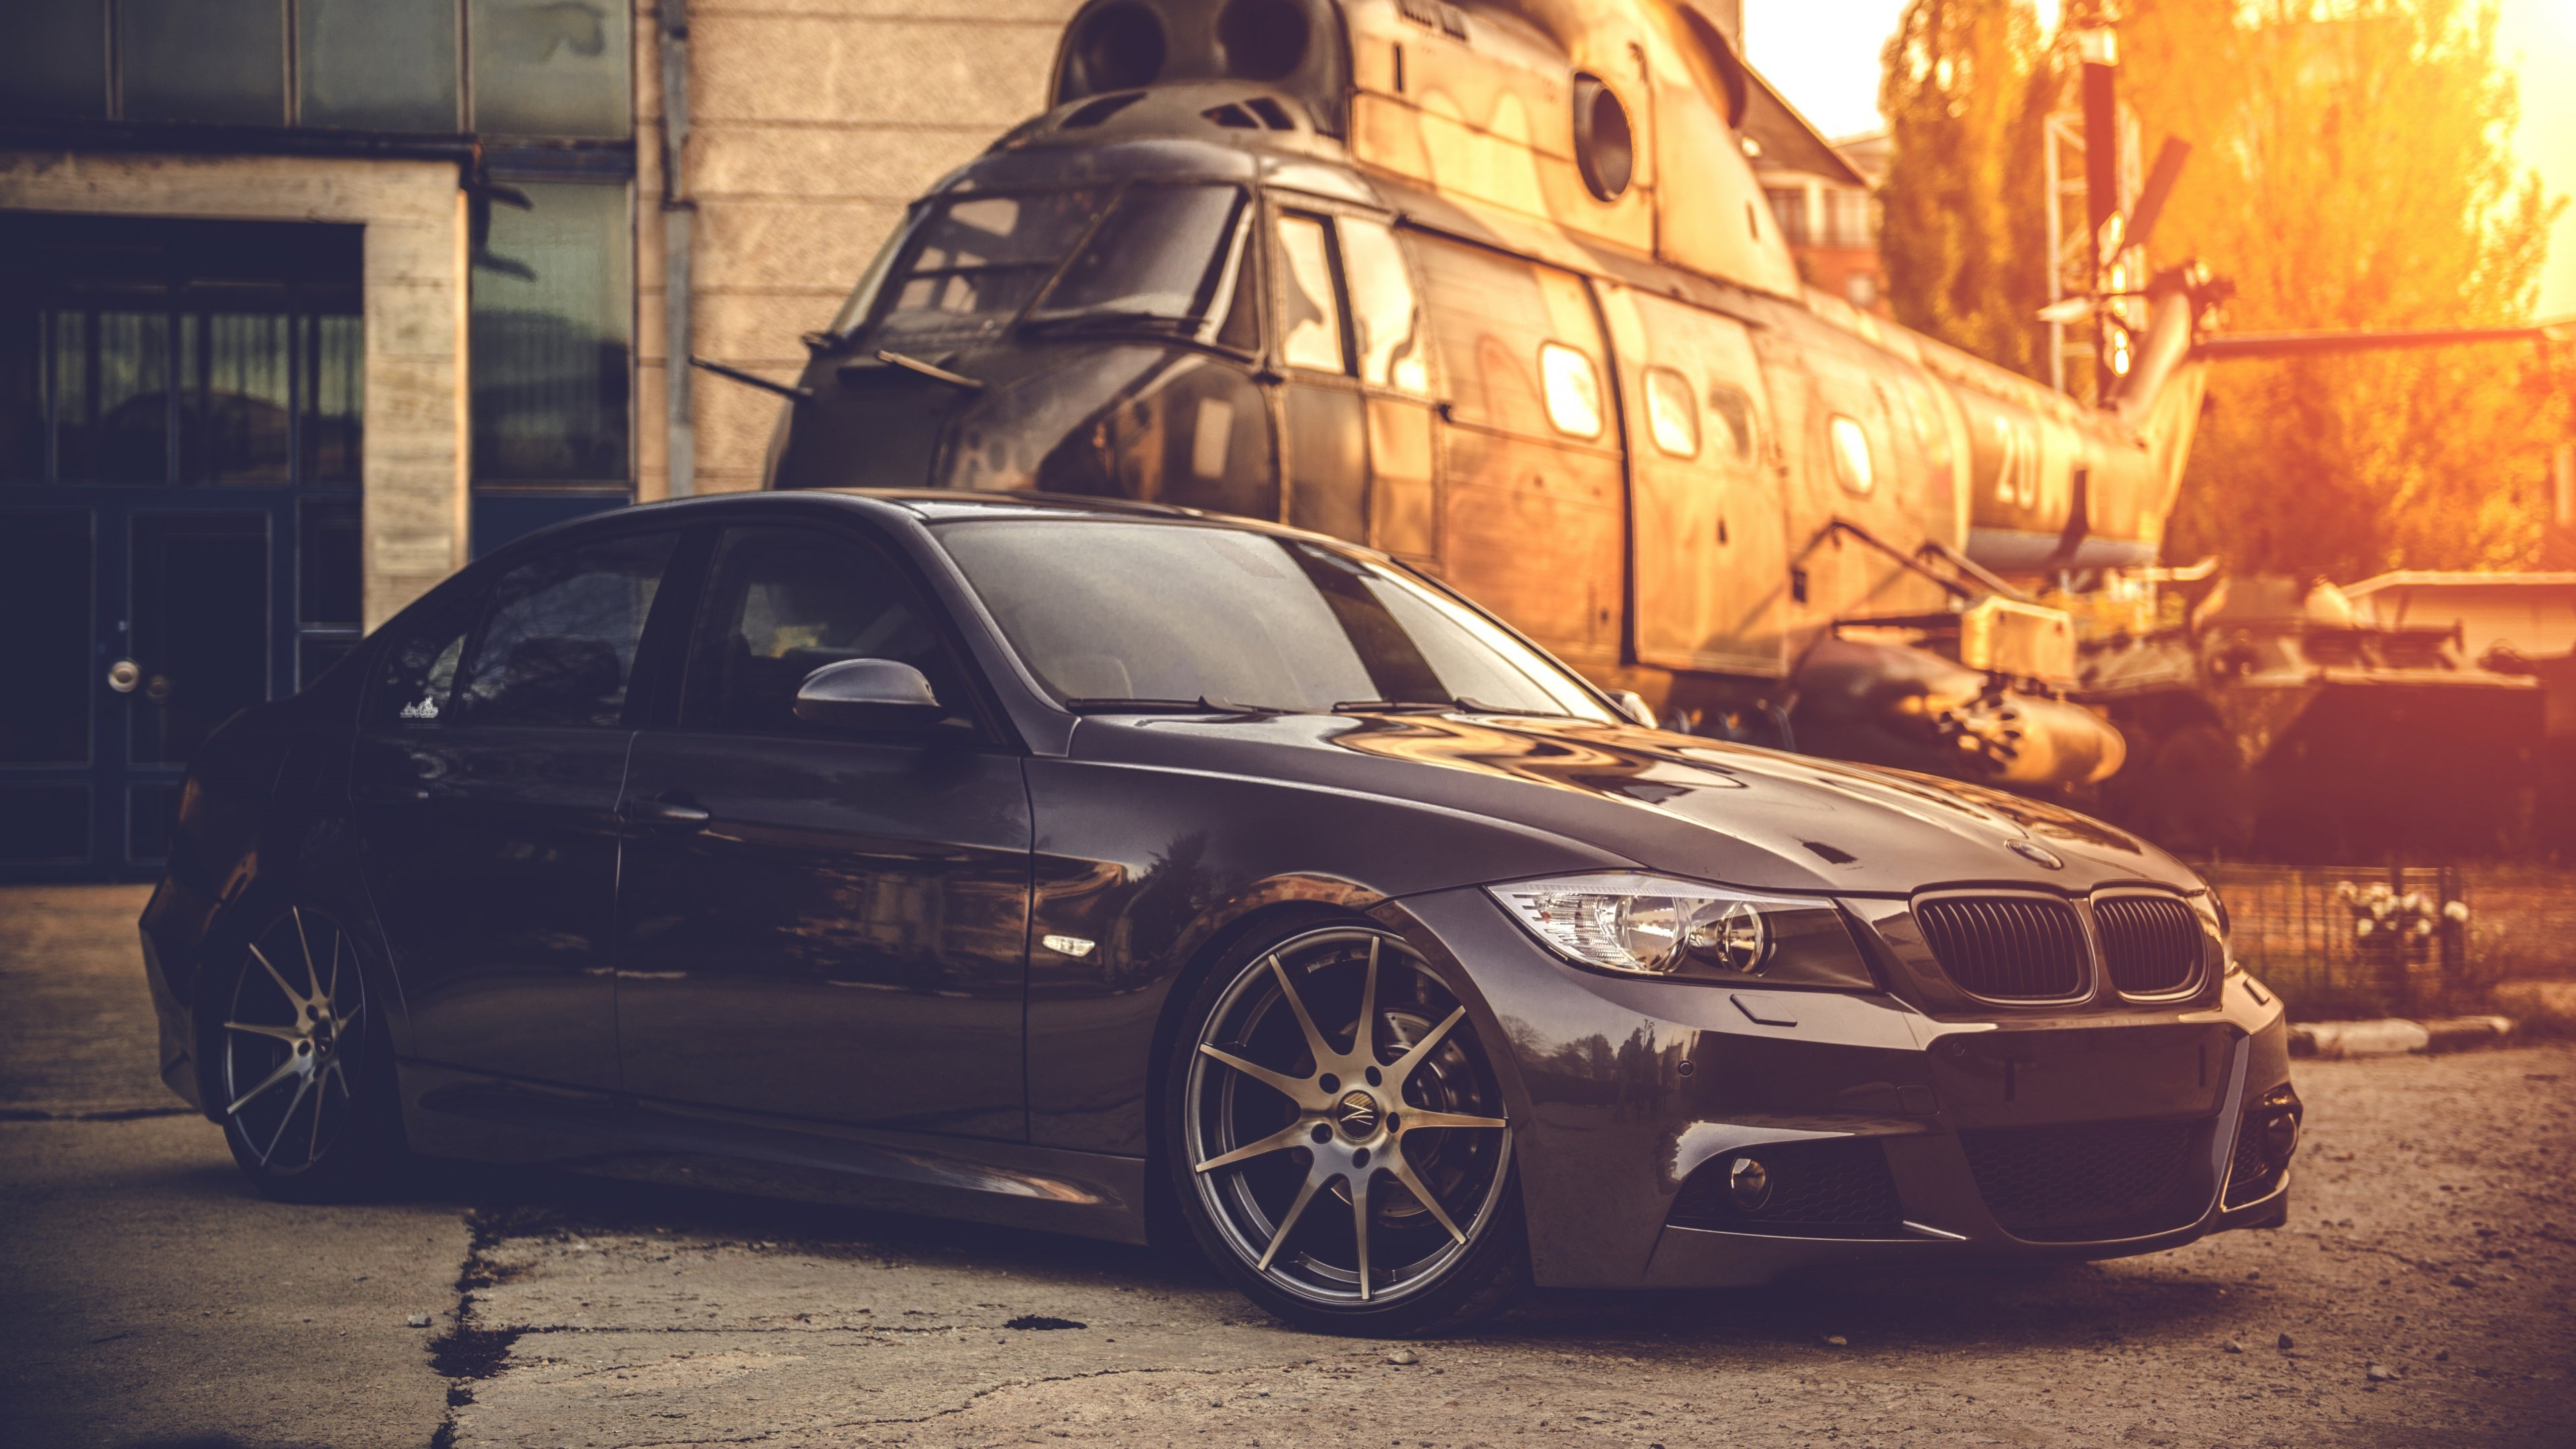 4k Bmw Desktop Wallpapers Top Free 4k Bmw Desktop Backgrounds Wallpaperaccess